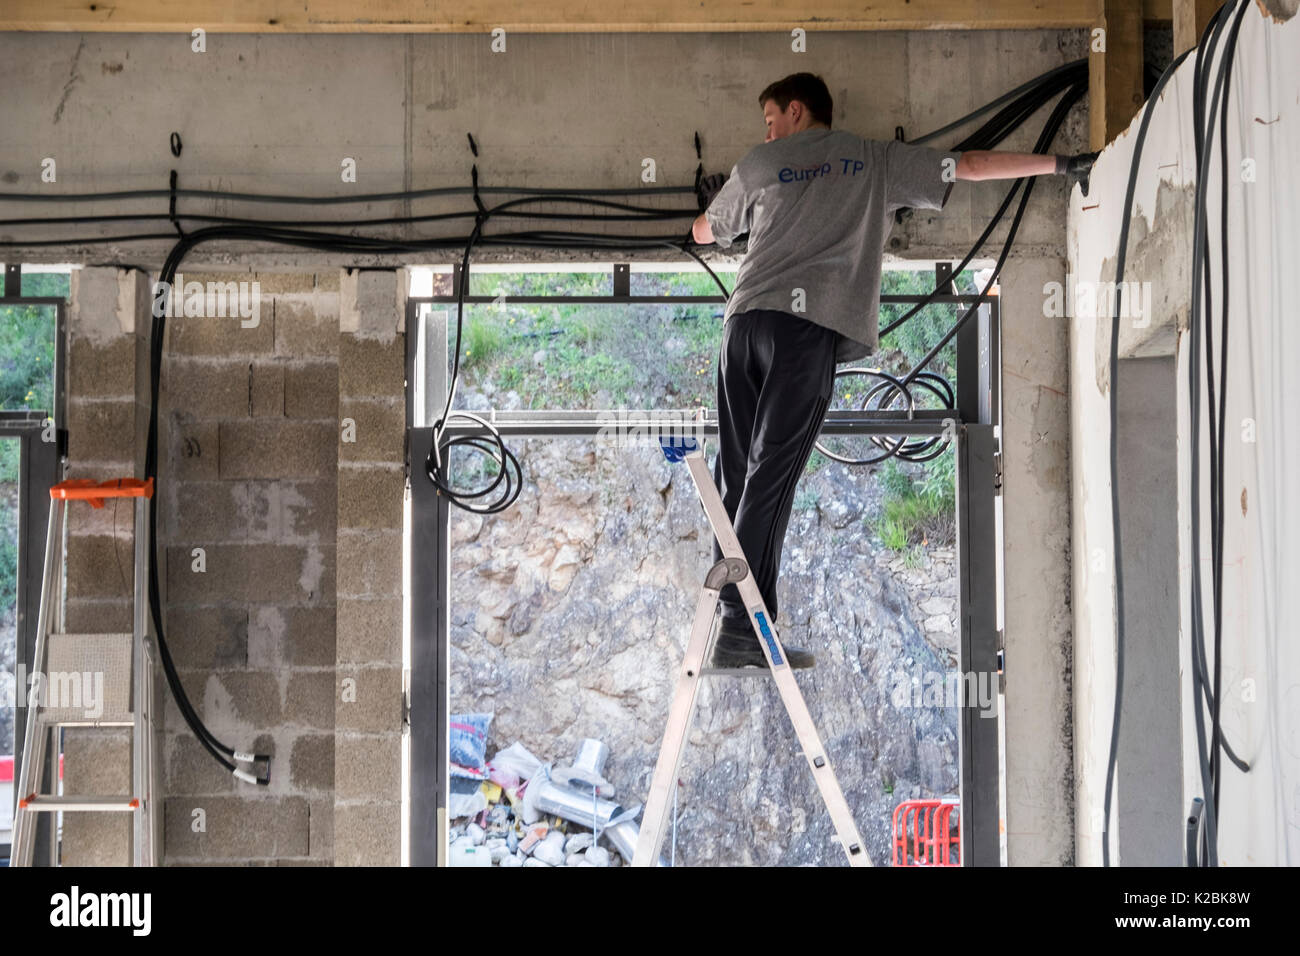 Electrician on a ladder works to install electrical cables in a new ...